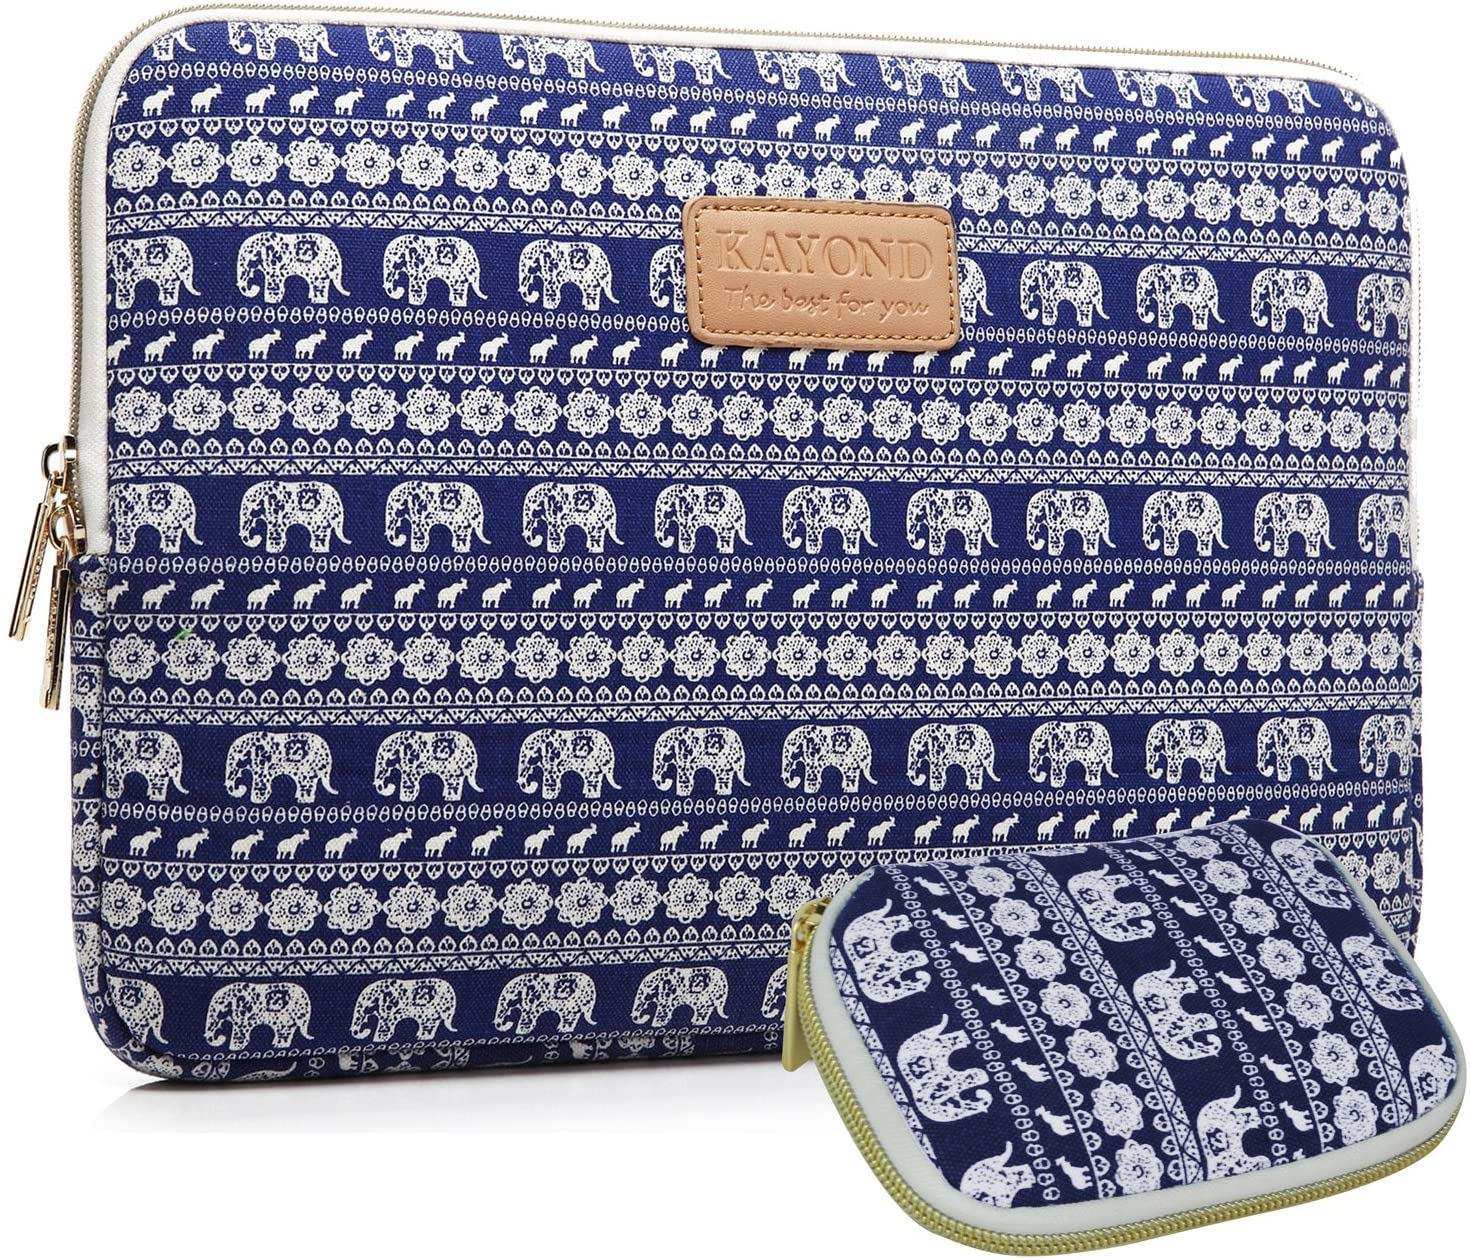 KAYOND KY-23 Canvas Fabric Sleeve for 12.5-Inch Laptops - Elephant Patterns